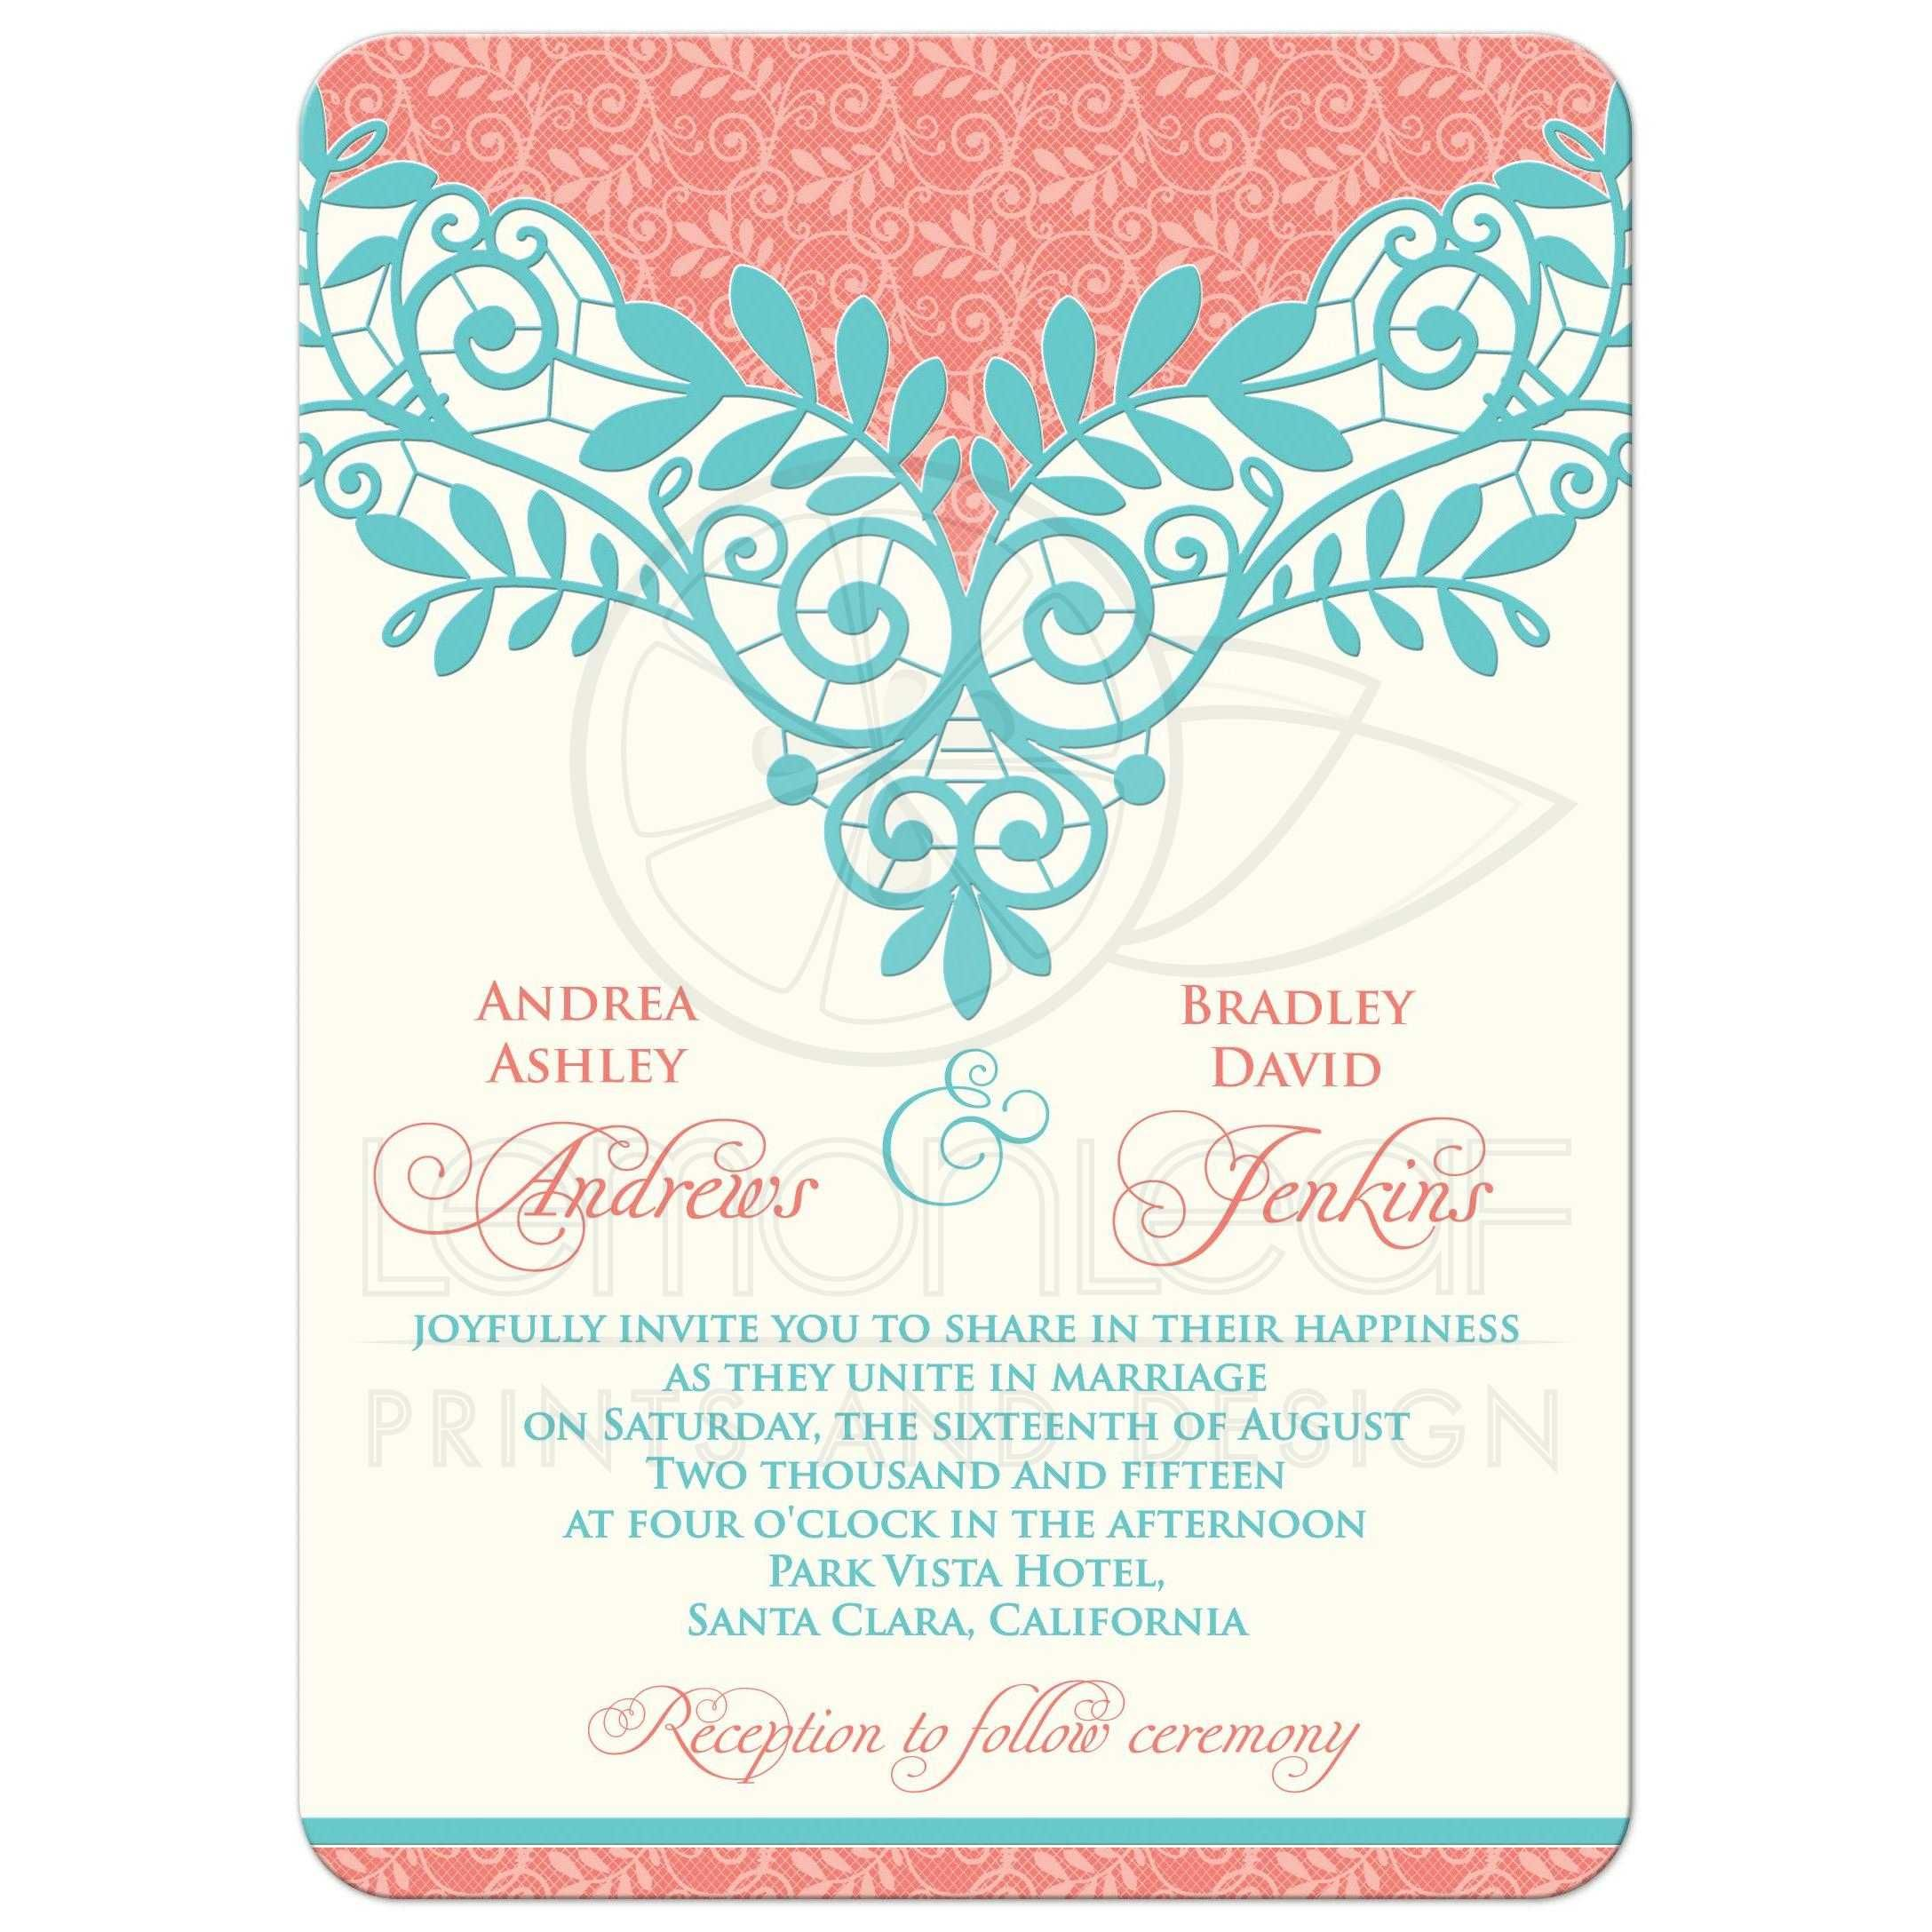 Wedding Invitation Vintage Lace Coral Turquoise   Coral turquoise ...